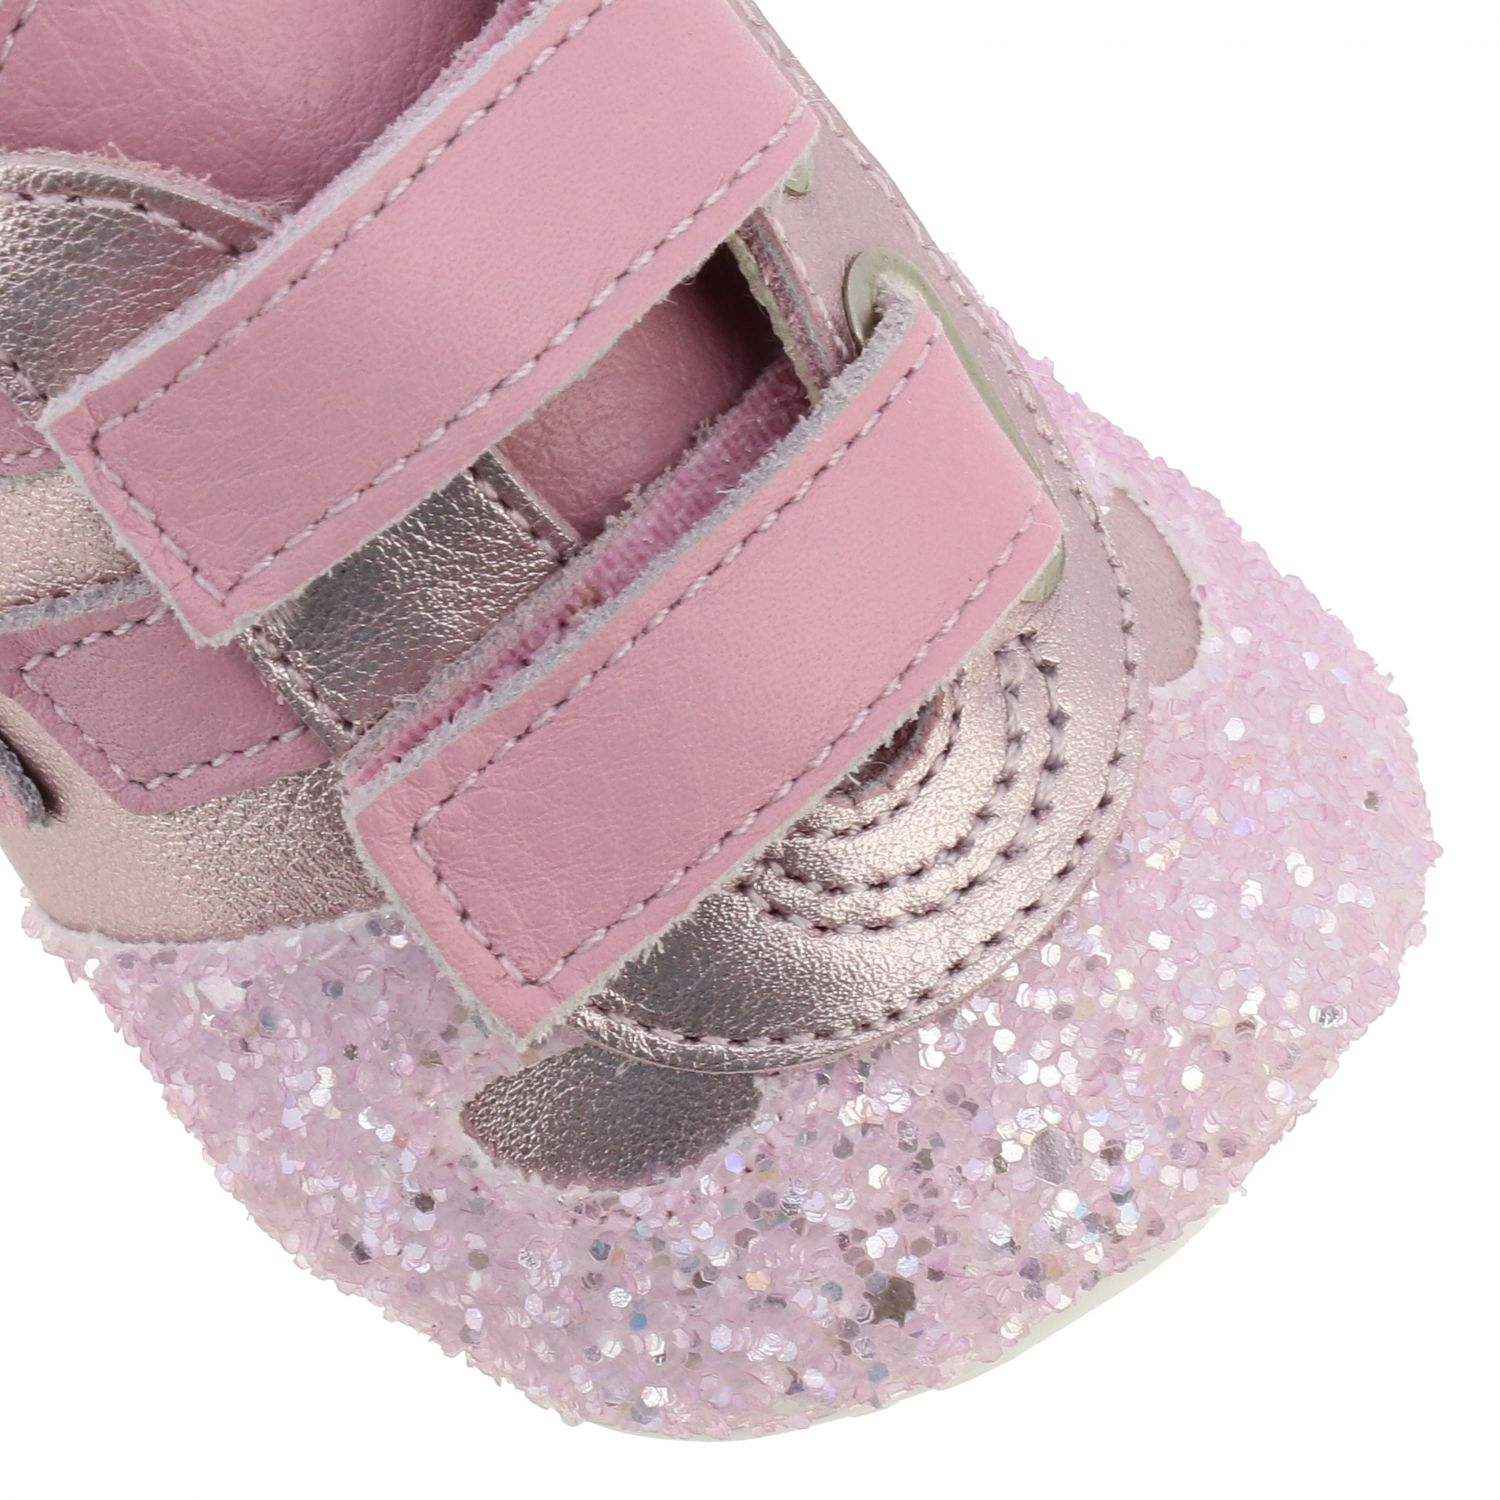 Olympia Hogan laminated leather and glitter sneakers with Velcro straps pink 4